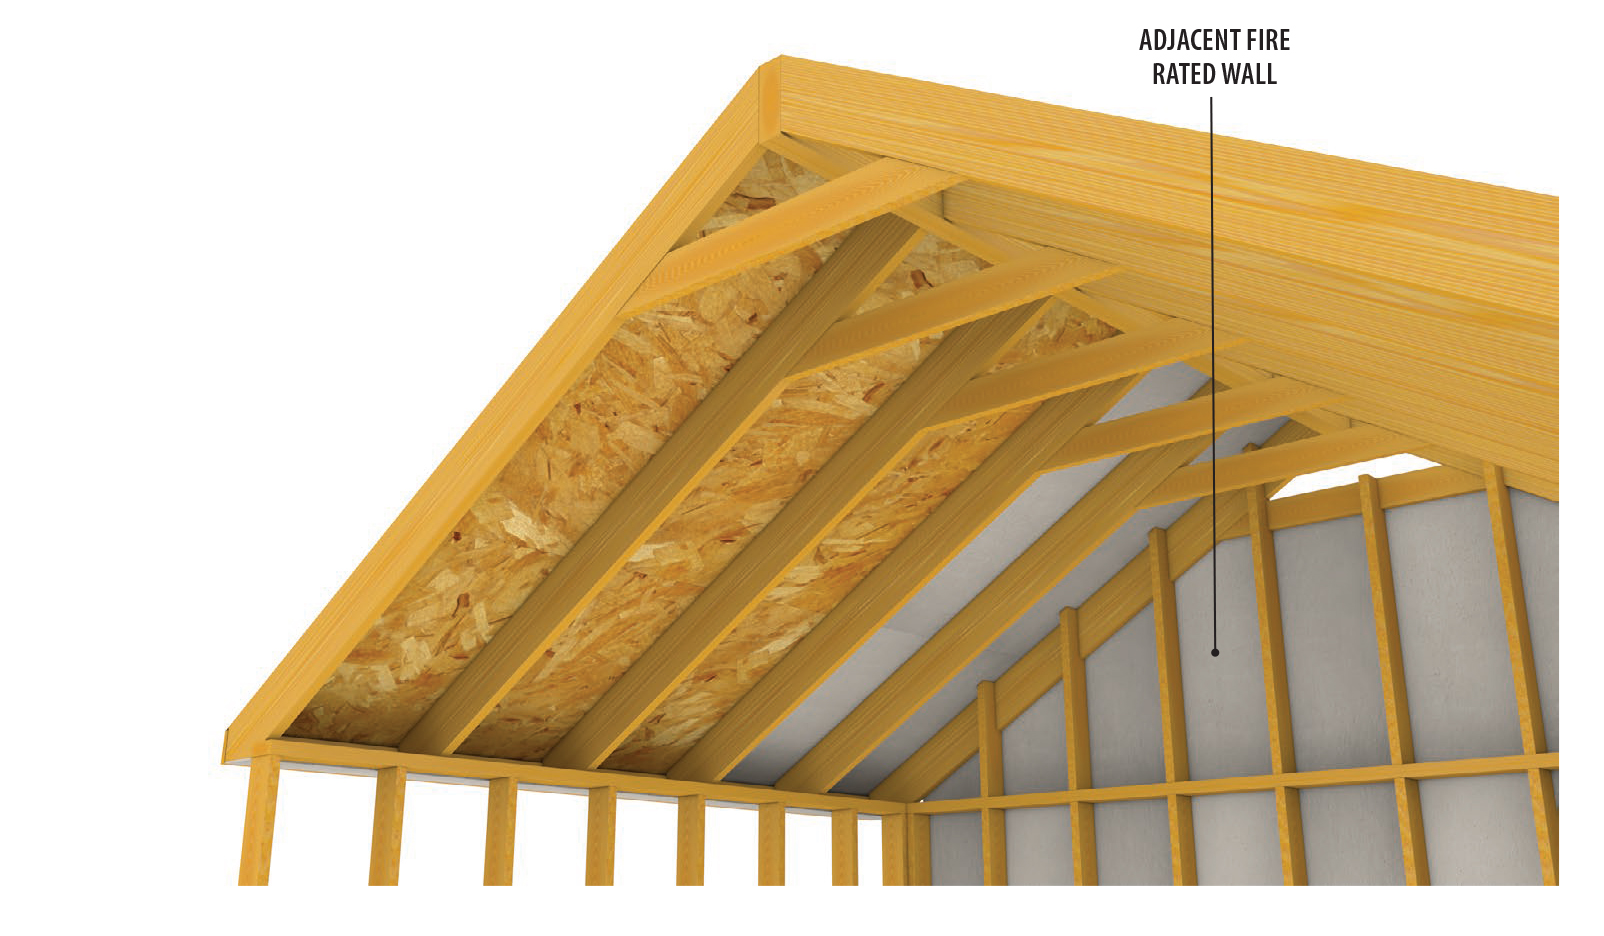 Lp flameblock fire rated osb for residential builders lp for Roof sheathing material